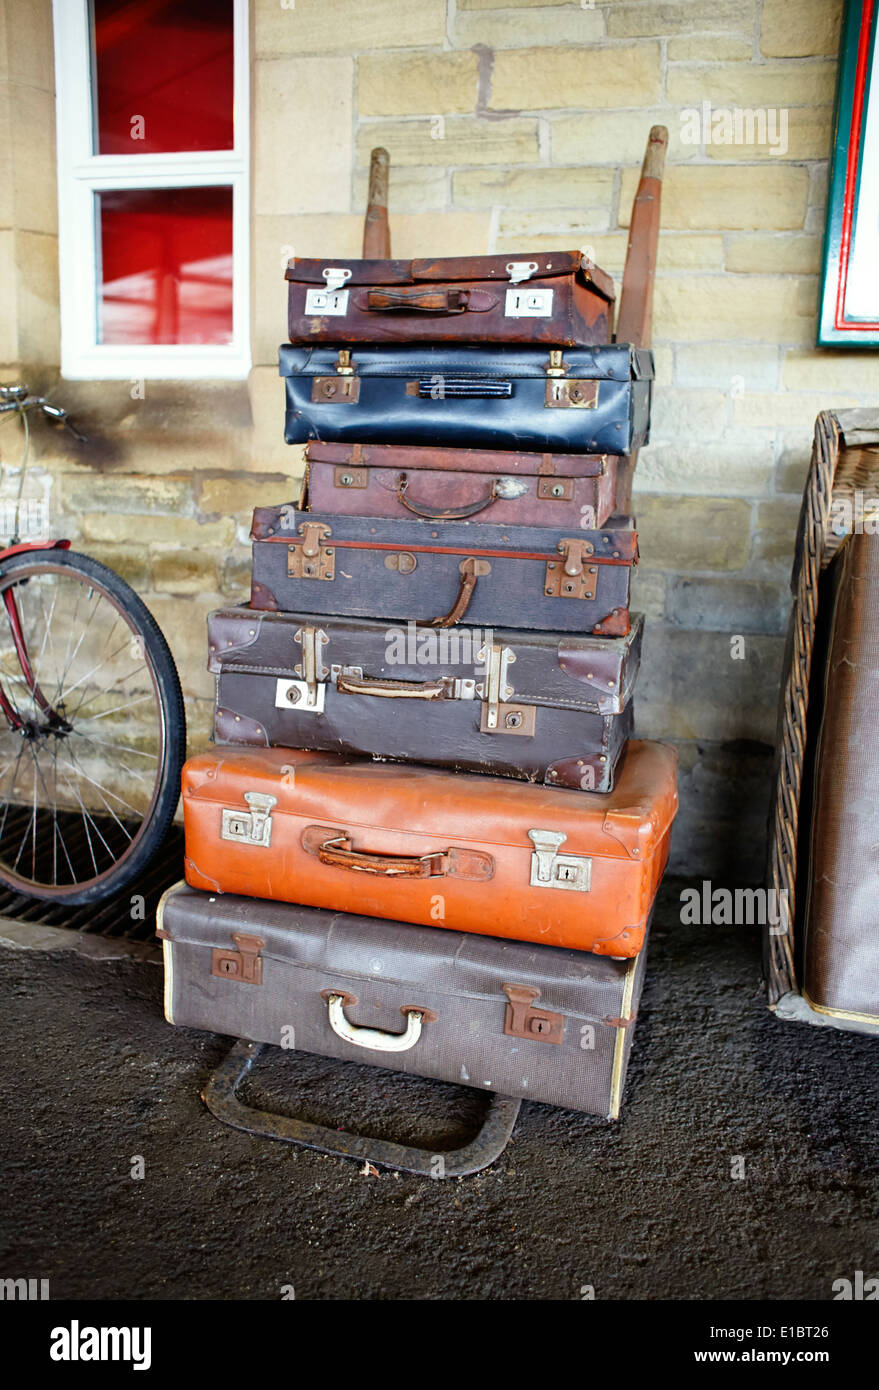 Old Suitcases Stack Of Old Suitcases At Railway Station Stock Photo Royalty